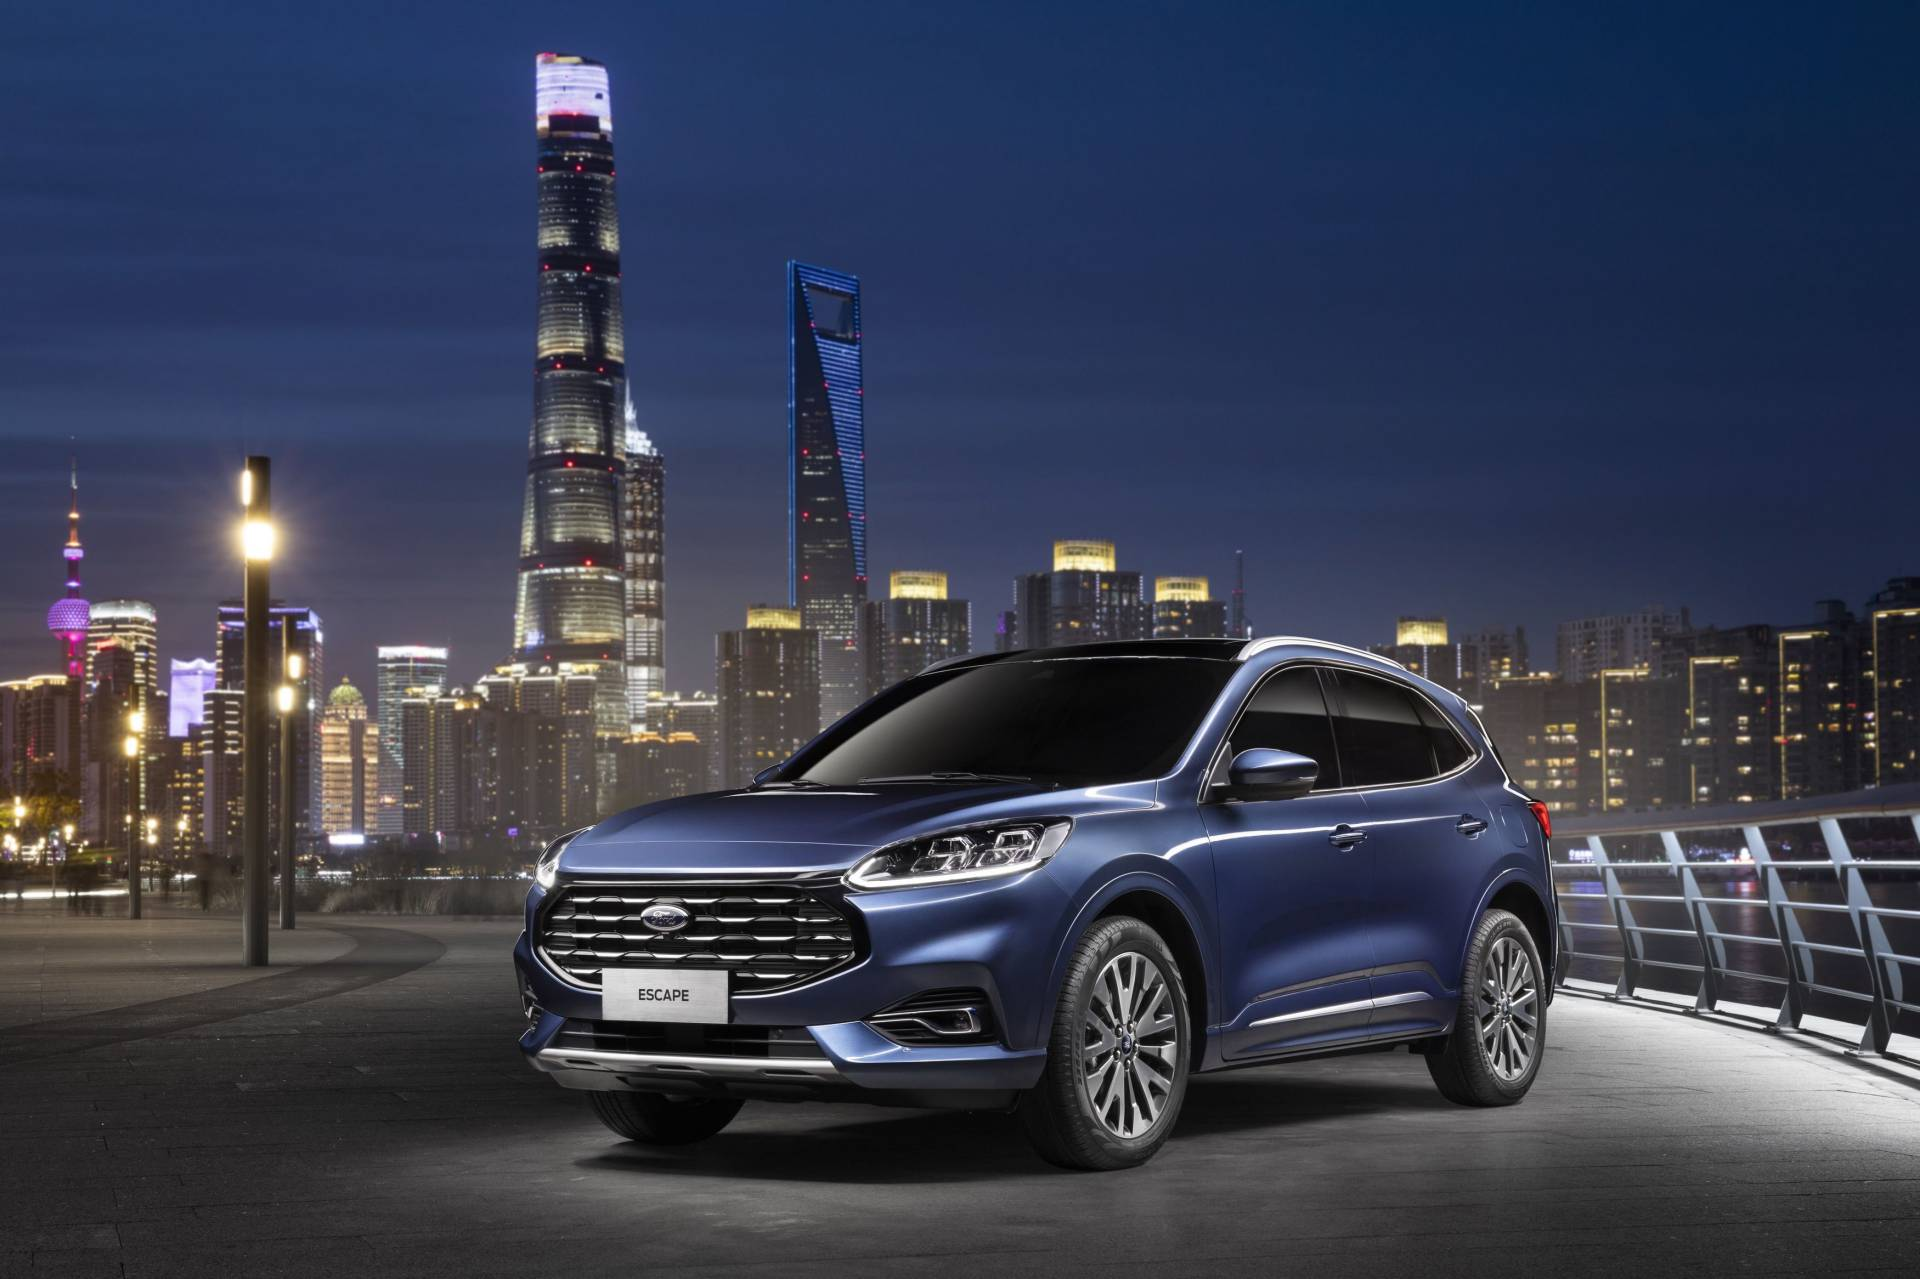 2020-ford-escape-china-4.jpeg